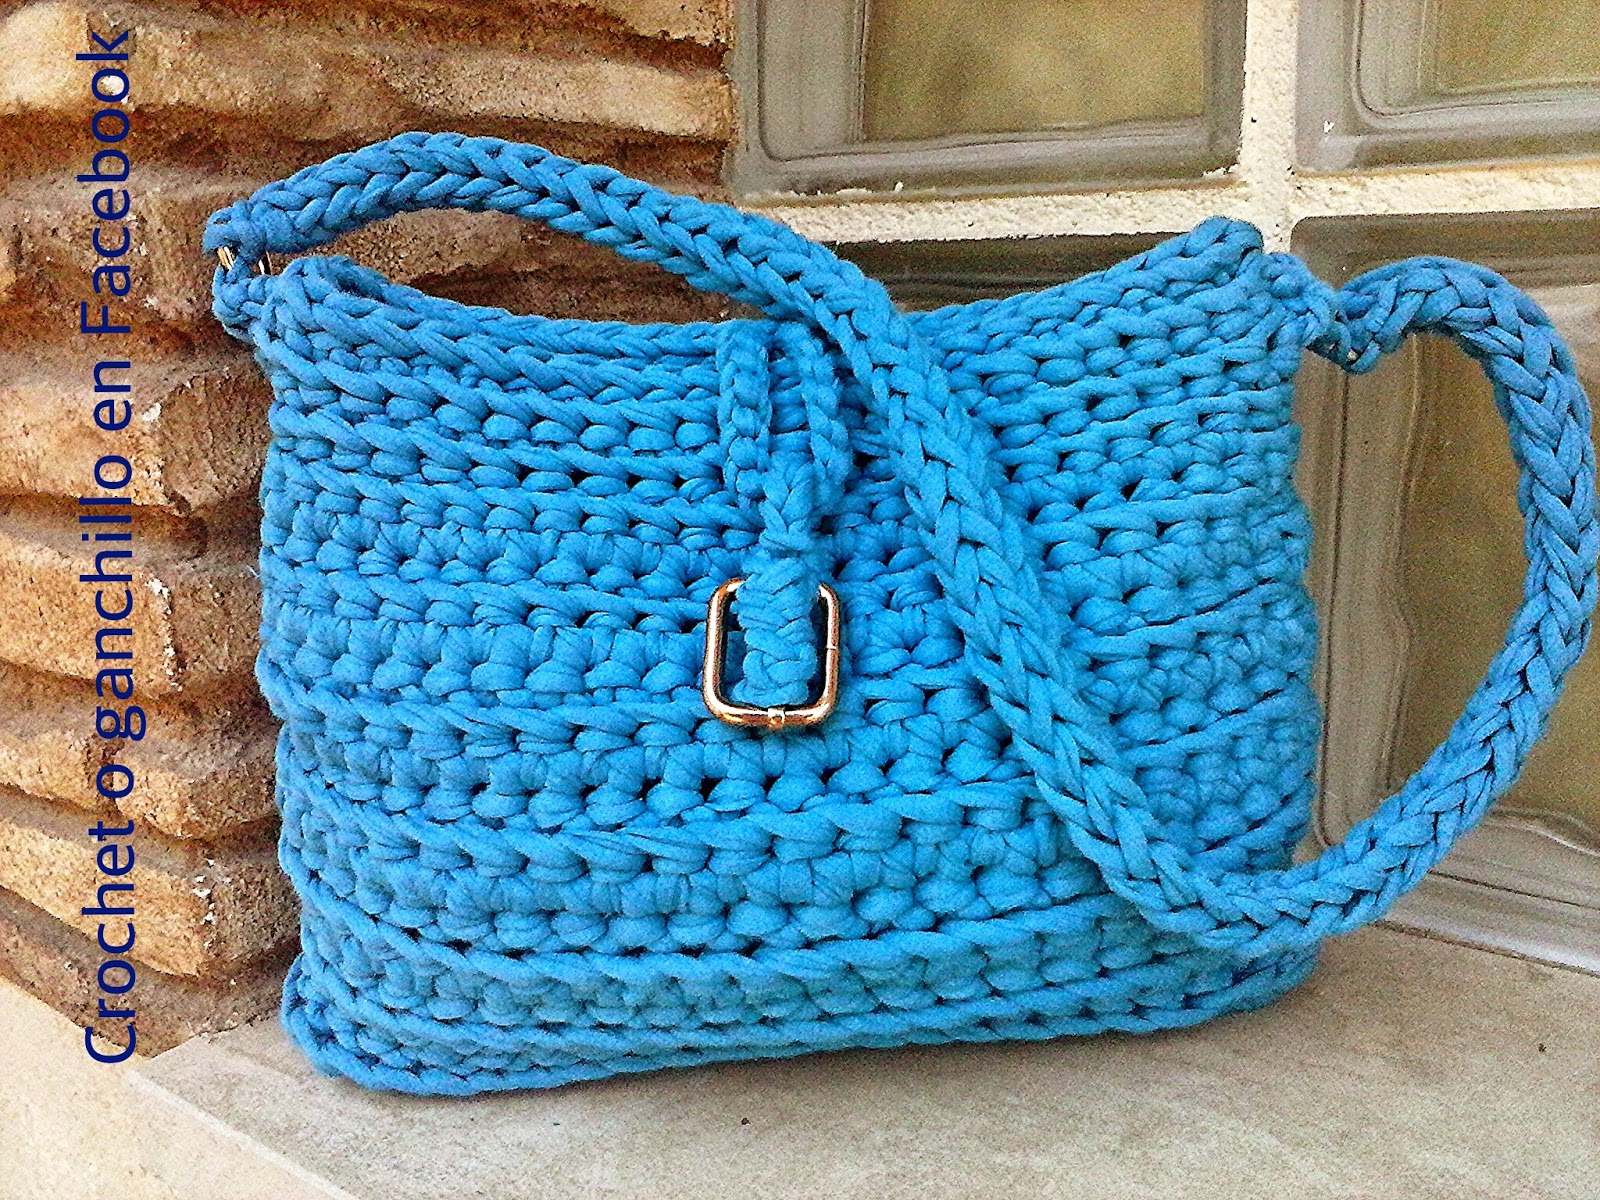 Crochet o ganchillo bolsos de trapillo for Bolsos de crochet de trapillo